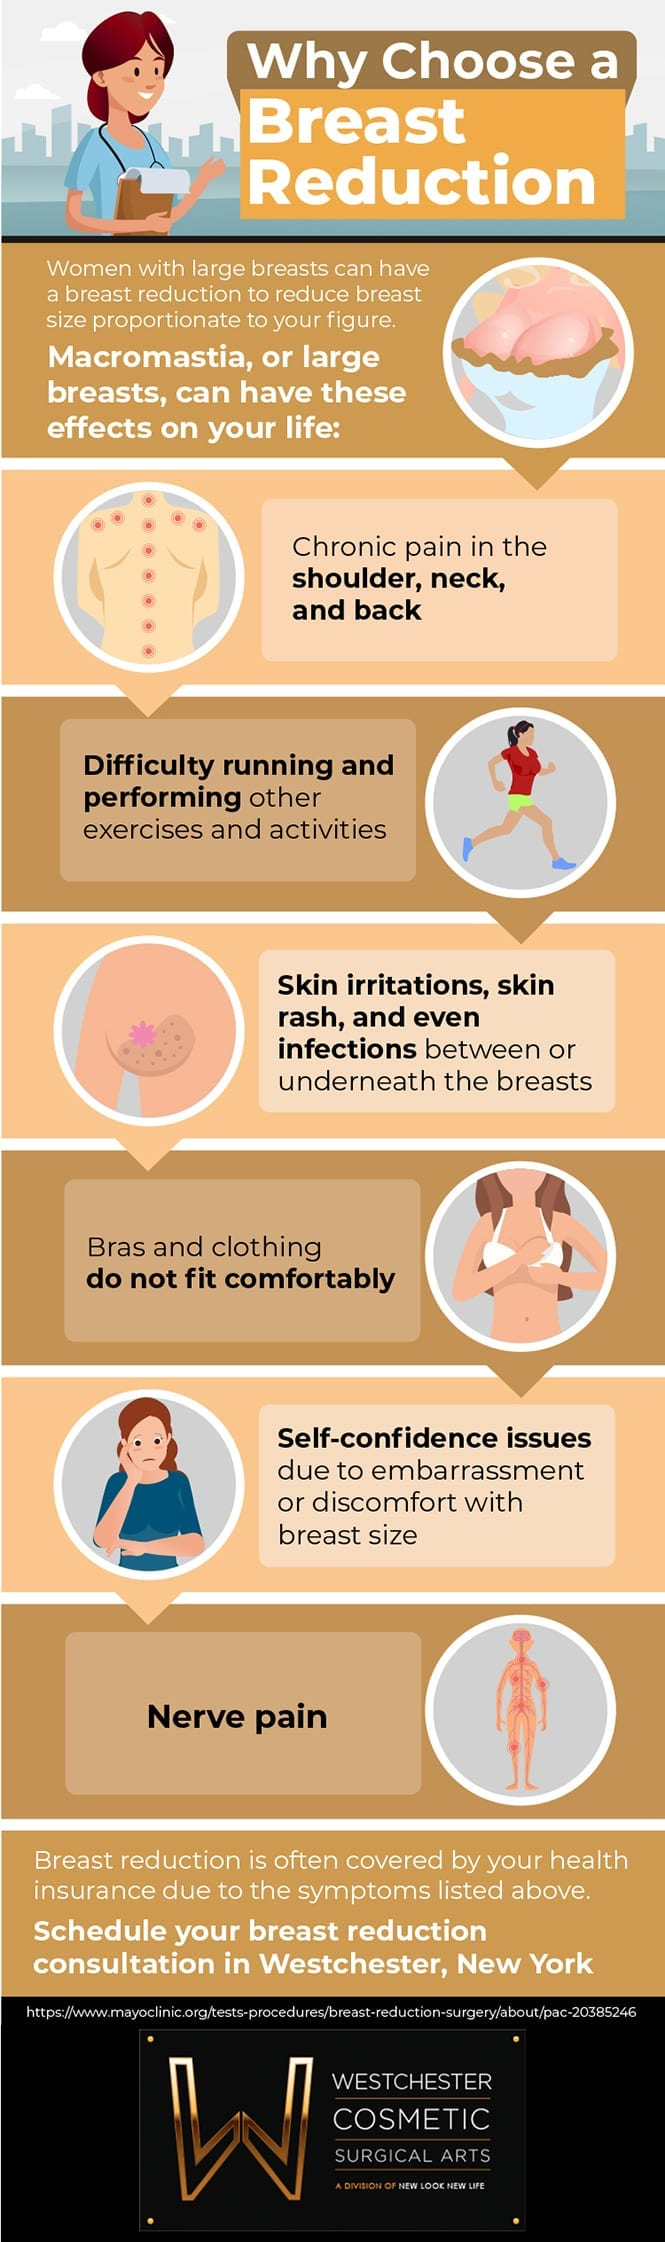 Breast reduction graphic goes over reasons why